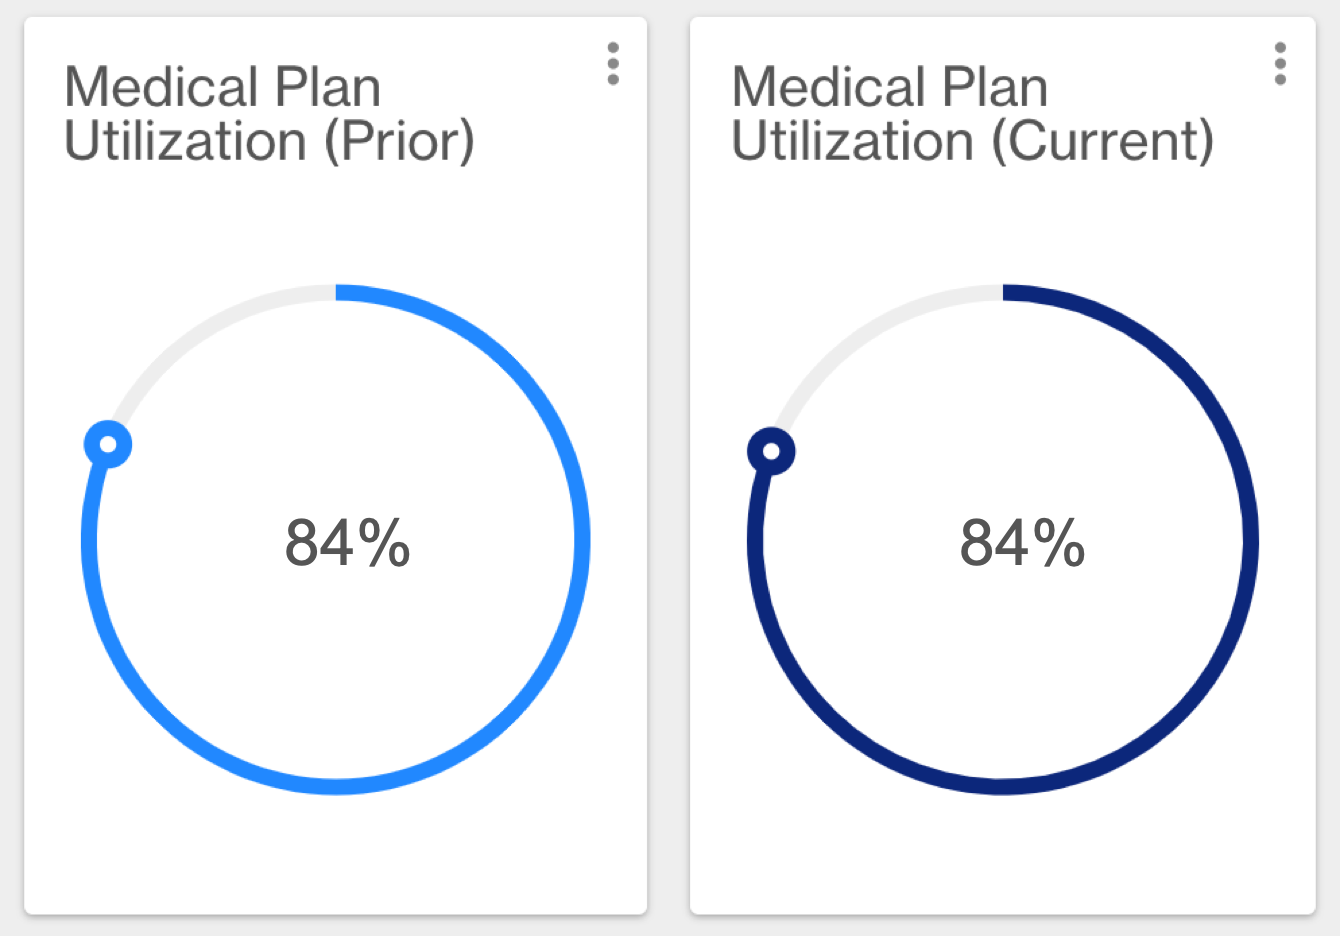 Charts showing percentage of employees (84%) who used their medical plan.